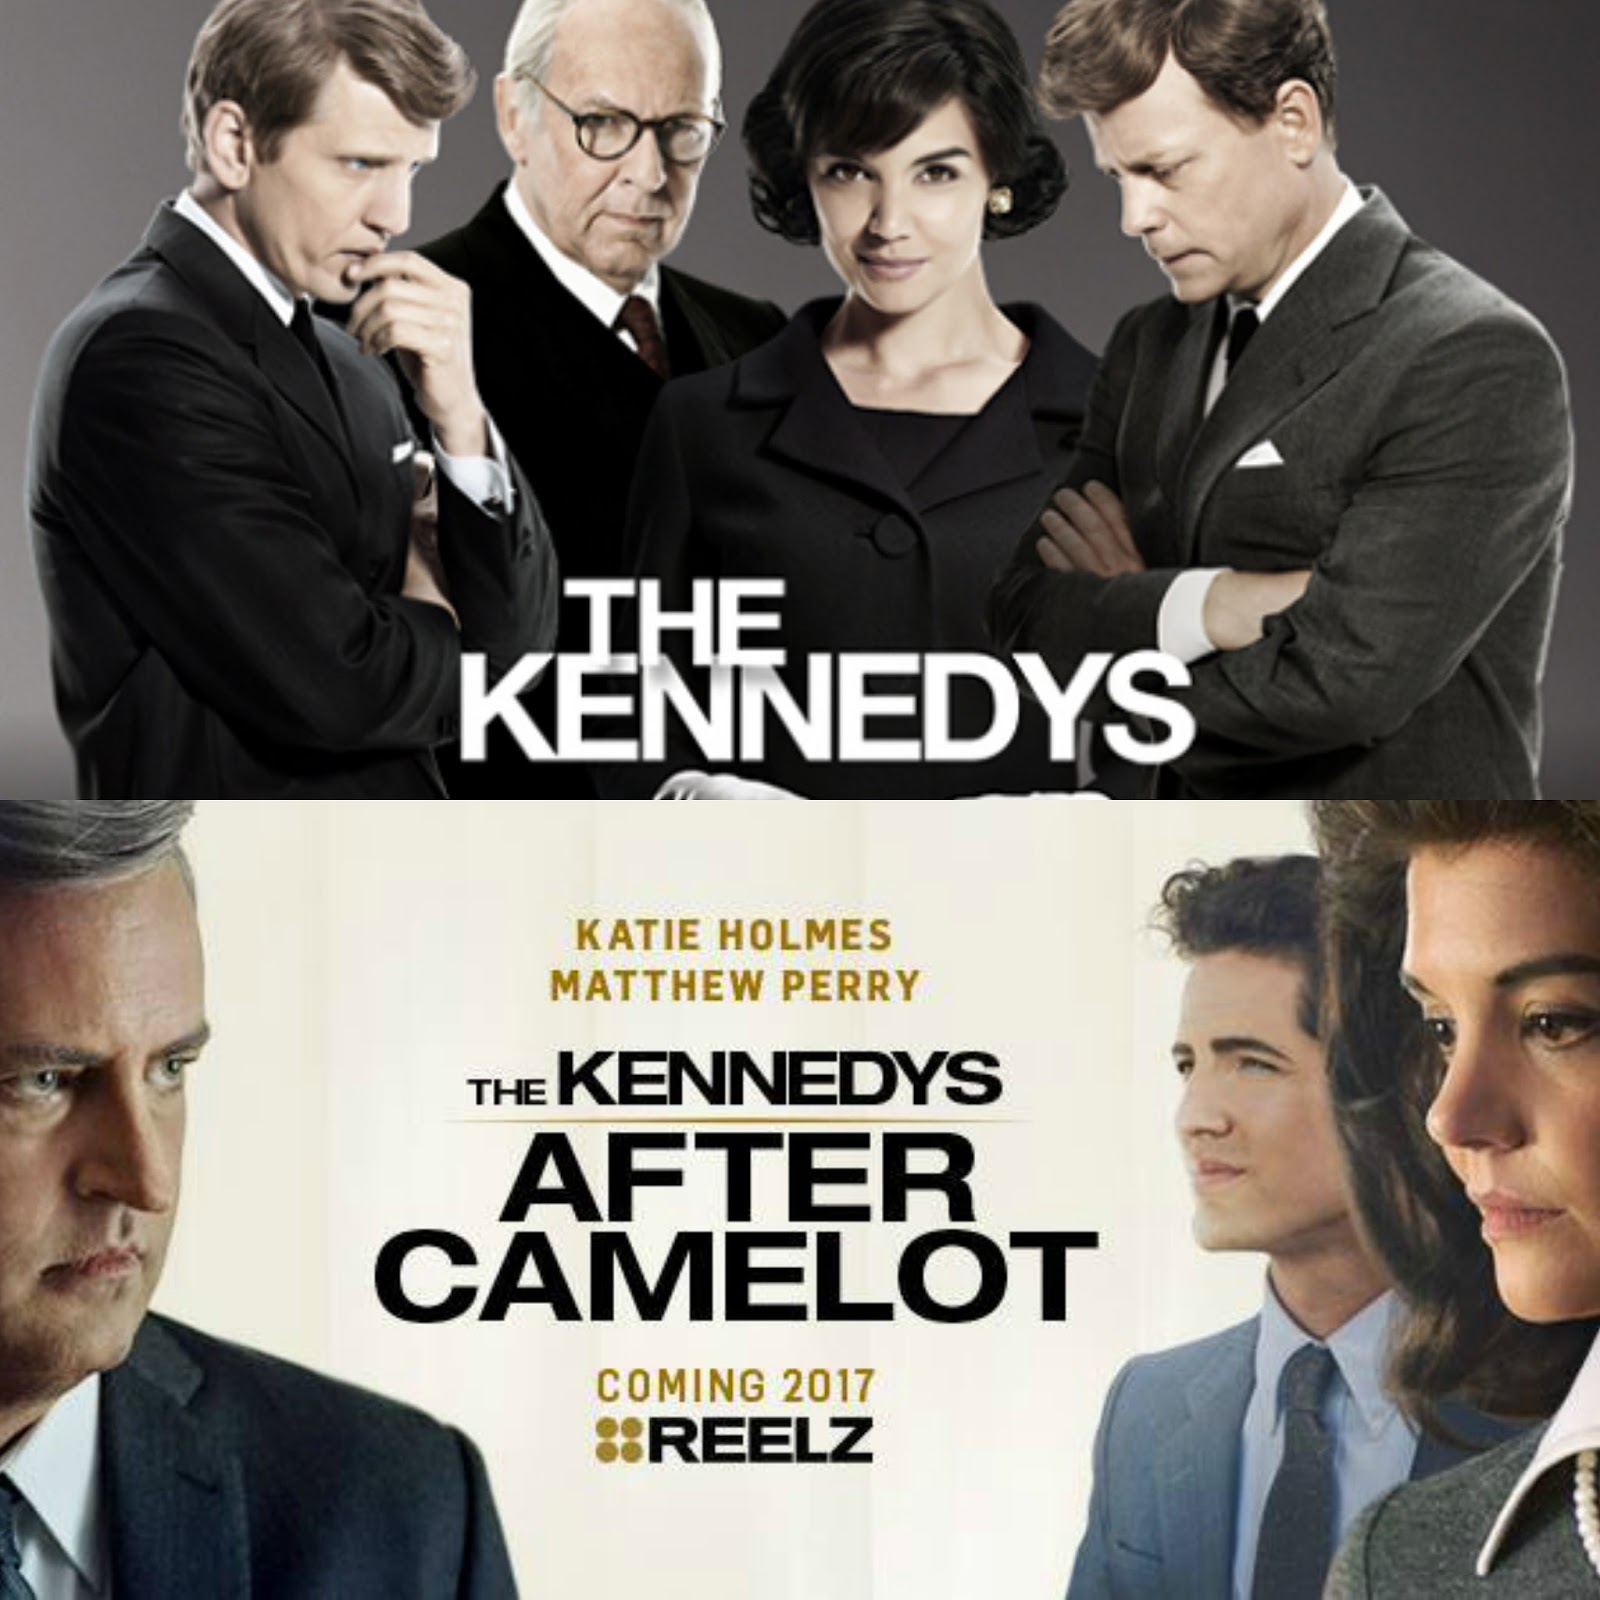 My Fascination In The Kennedy Family Started Sometime Between 2006 And  2007. My Family Had Been Watching A Movie About Jackie, Ethel And Joan  Kennedy That ...